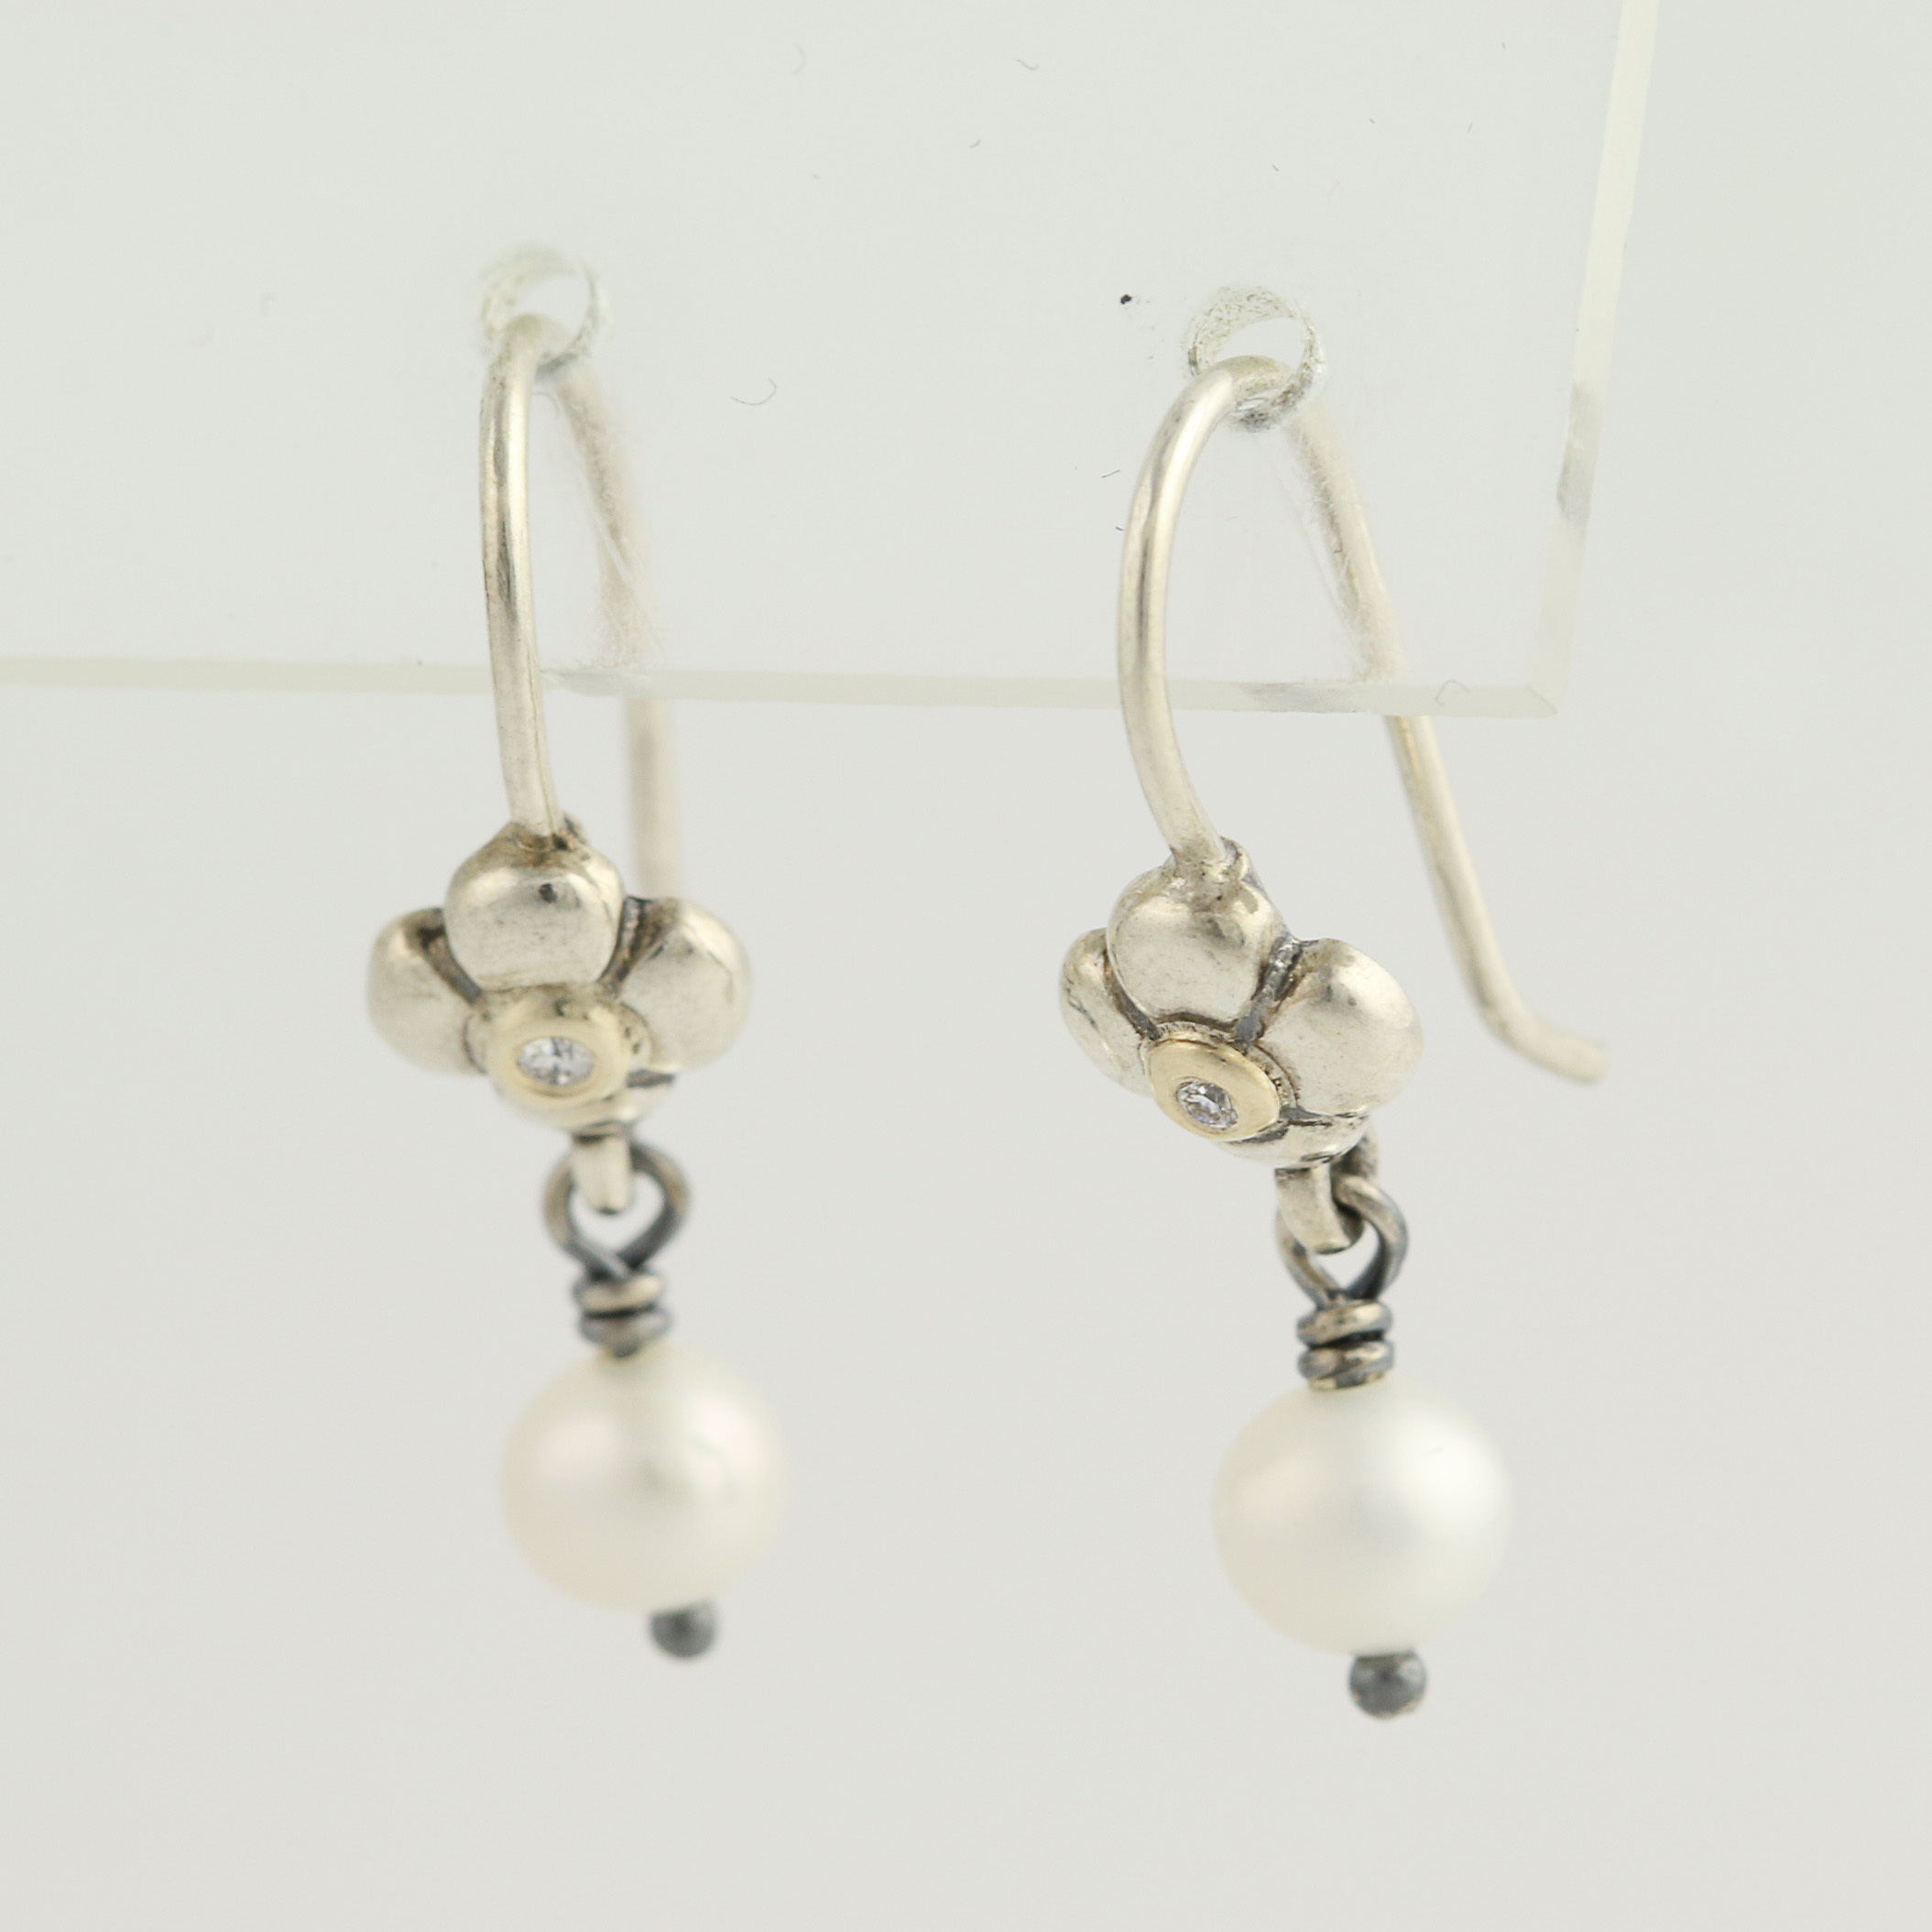 New Pandora Earrings White Pearl Posey 290620P Sterling